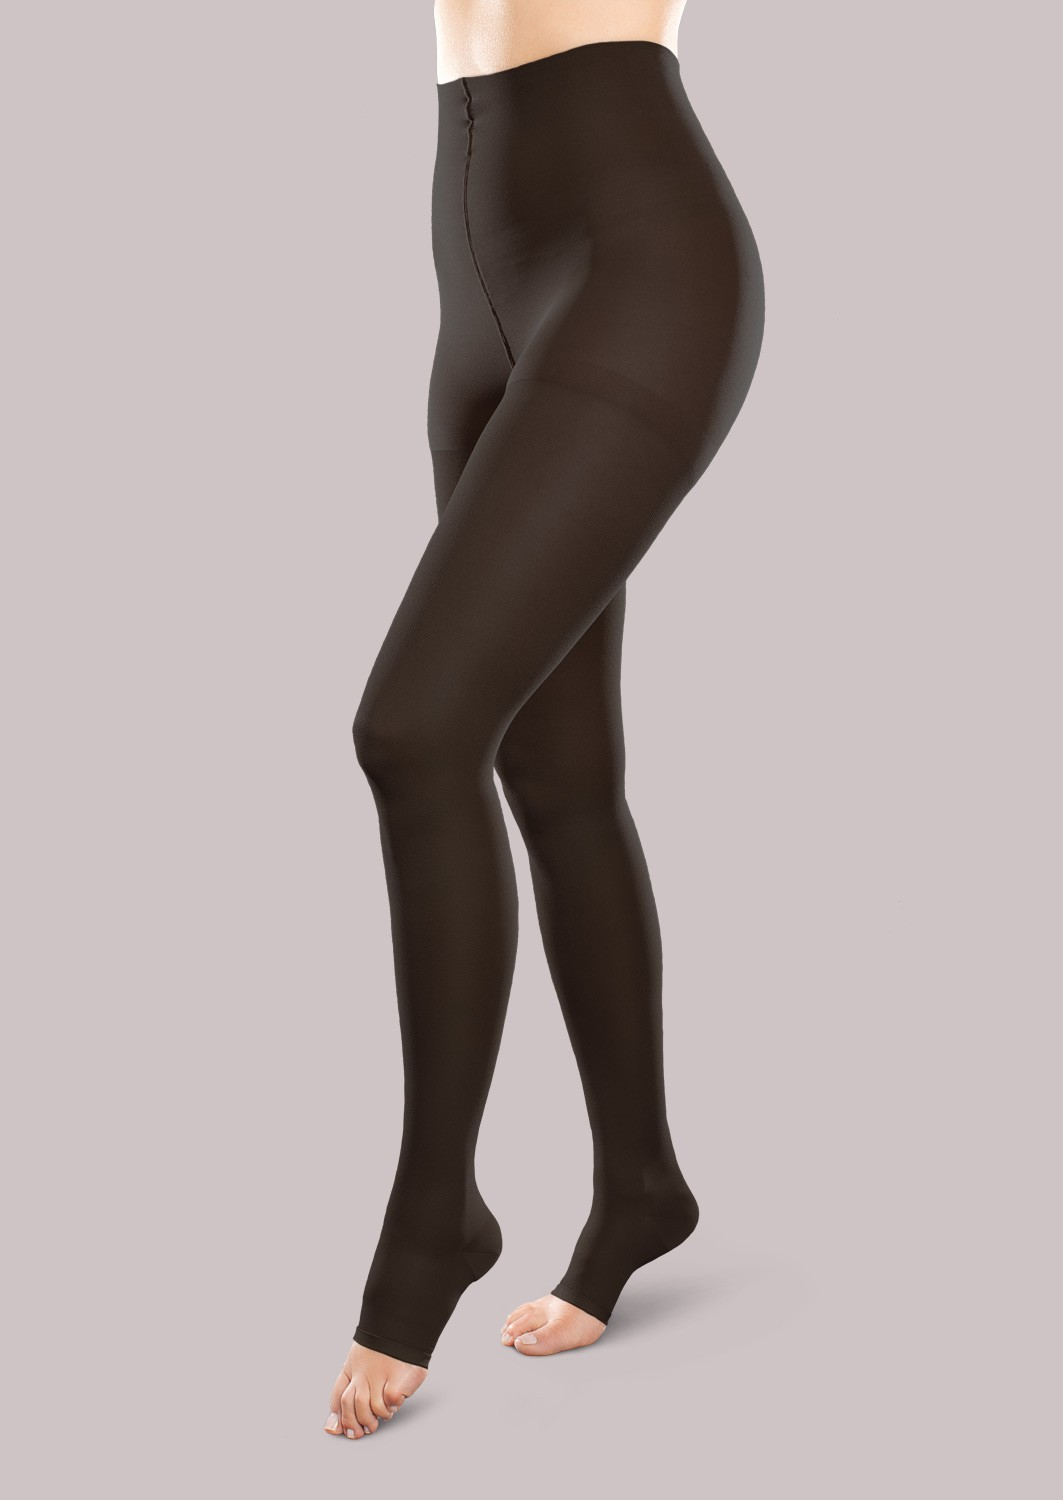 Male adult warm opaque tights